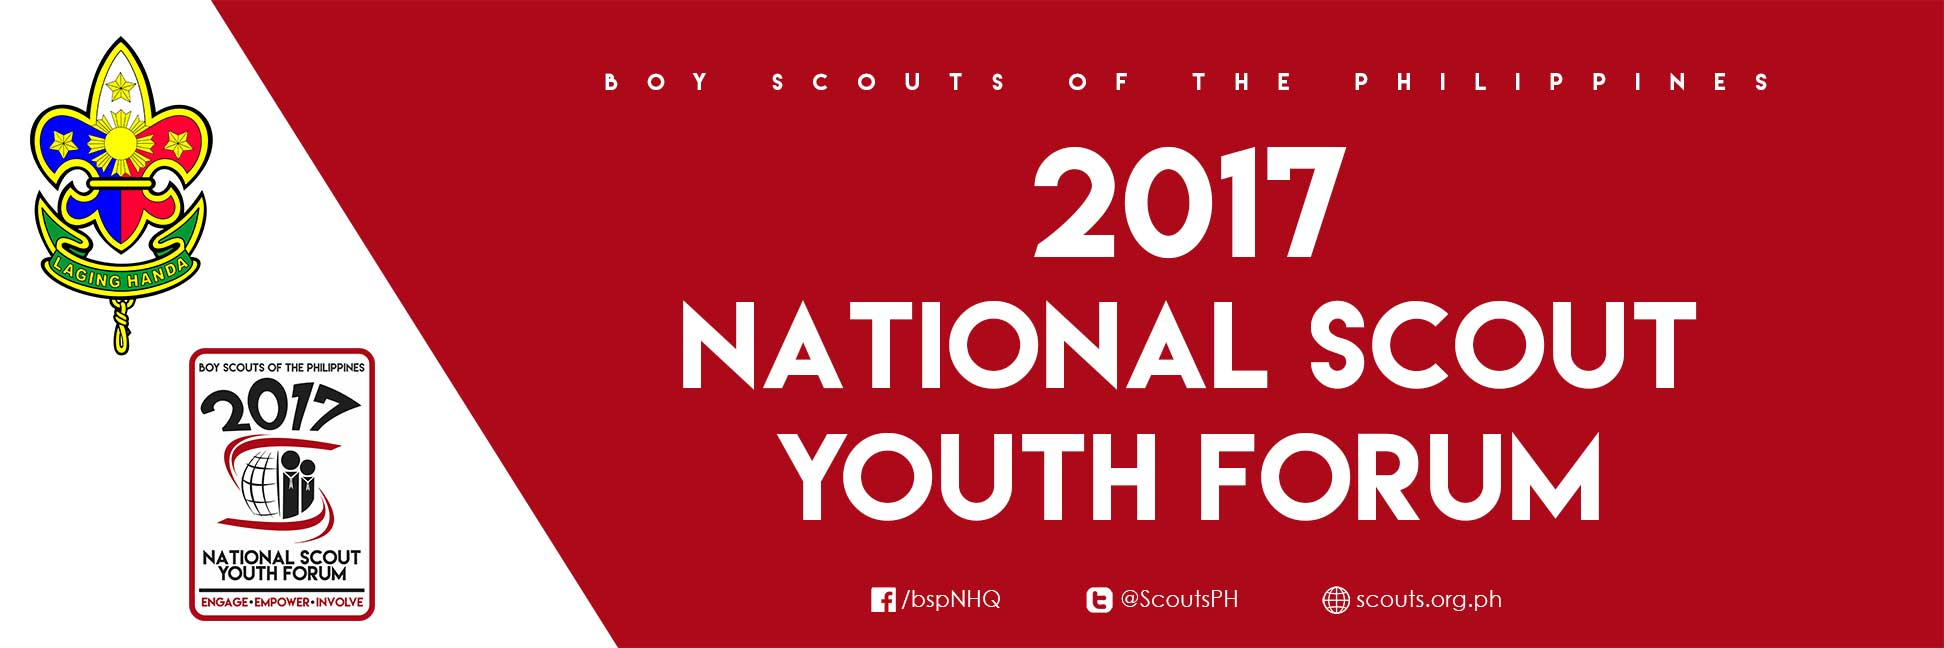 BSP gears up for the 2017 National Scout Youth Forums - BSP